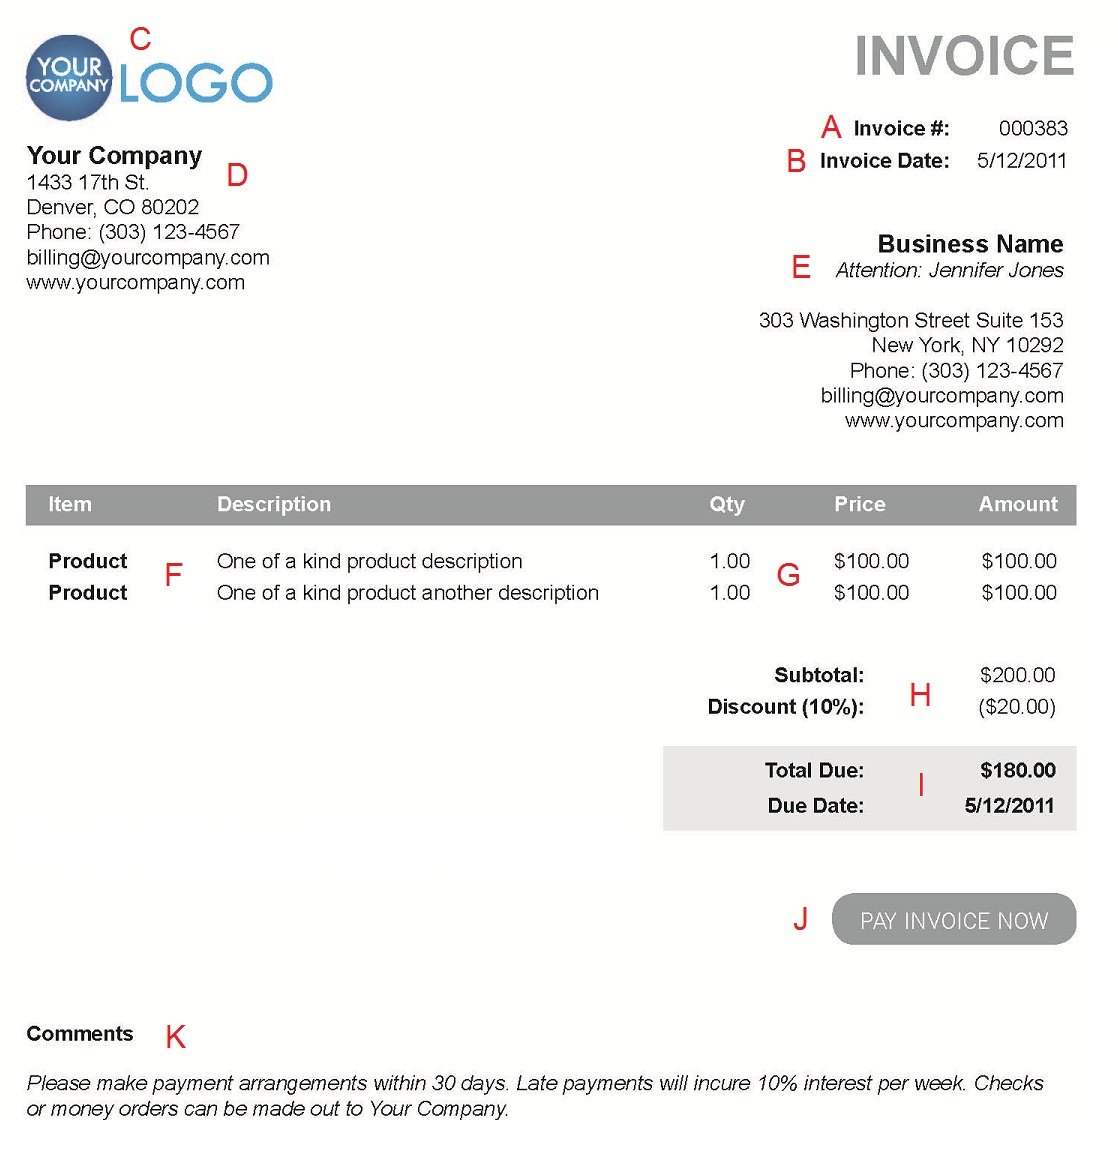 Hius  Fascinating The  Different Sections Of An Electronic Payment Invoice With Great A  With Lovely Transportation Invoice Also Pay The Invoice In Addition What Is Car Invoice Price And Simple Invoice Generator As Well As Jeep Wrangler Unlimited Invoice Price Additionally Free Excel Invoice Templates From Paysimplecom With Hius  Great The  Different Sections Of An Electronic Payment Invoice With Lovely A  And Fascinating Transportation Invoice Also Pay The Invoice In Addition What Is Car Invoice Price From Paysimplecom